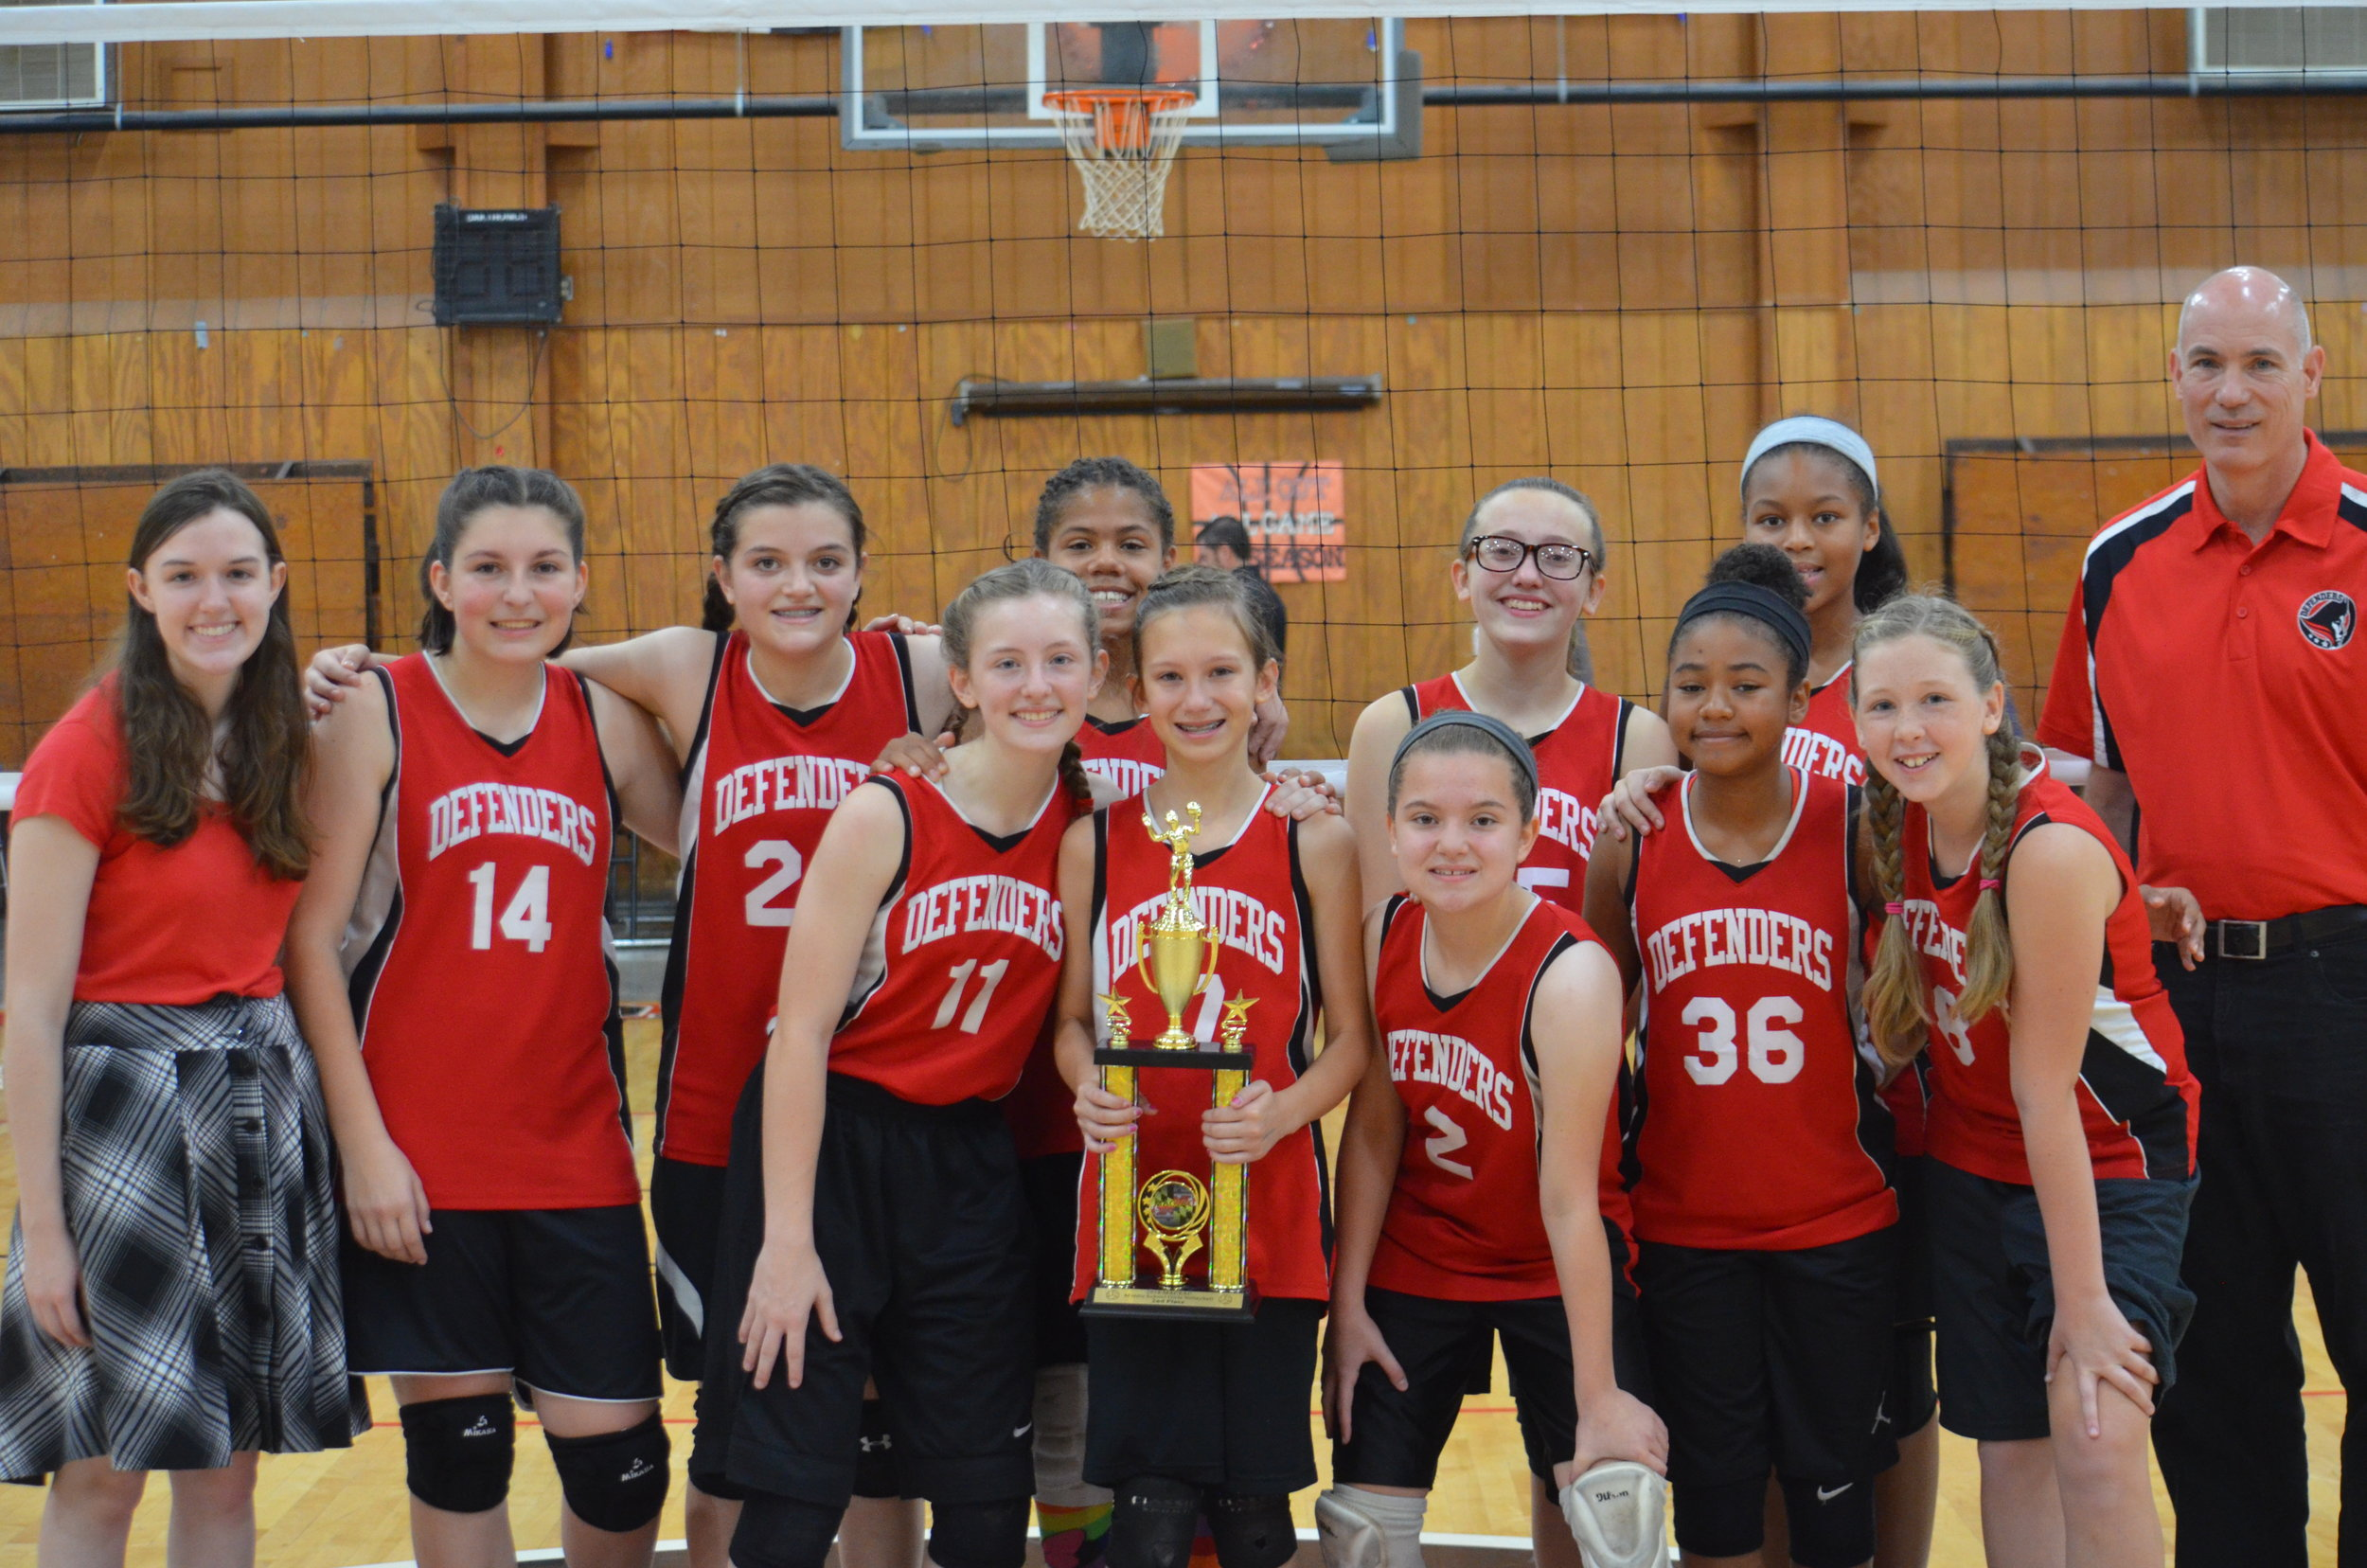 Frederick christian academy Middle school girls volleyball 2018 - 2nd place